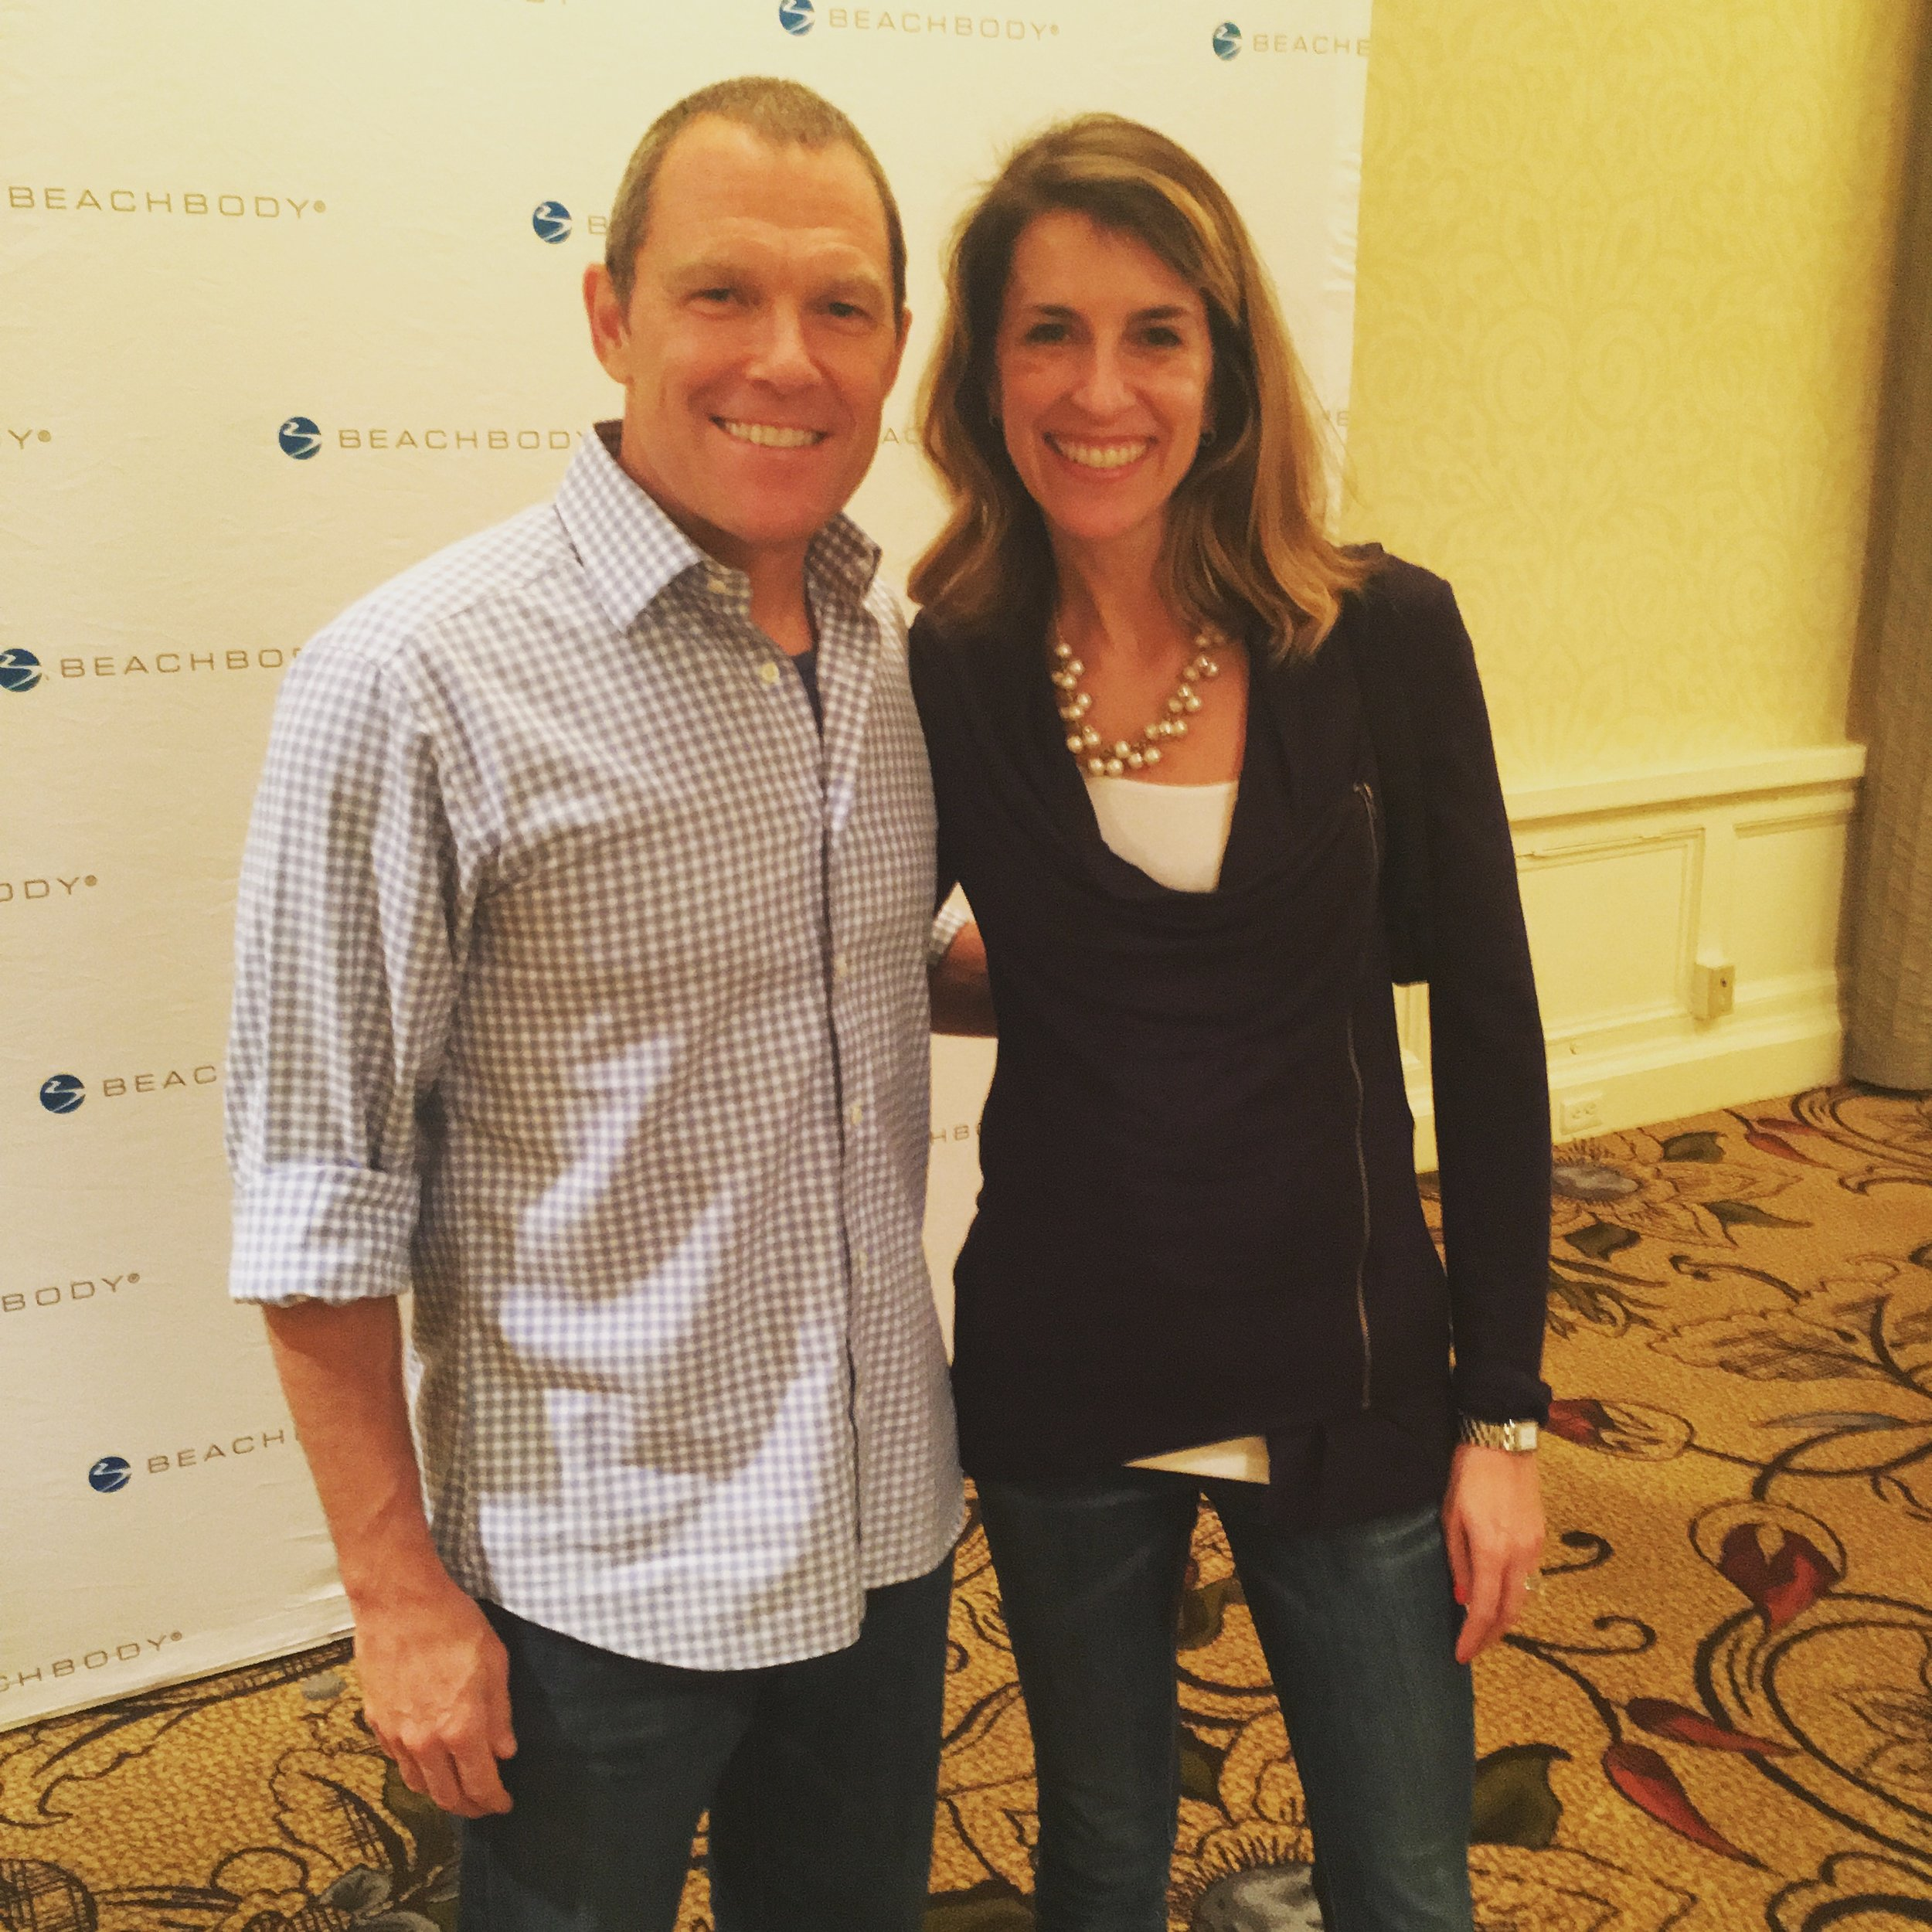 When I started the 21 Day Fix, I NEVER would have believed I'd be standing next the the CEO of this amazing company only 11 months later. This has been QUITE a journey!